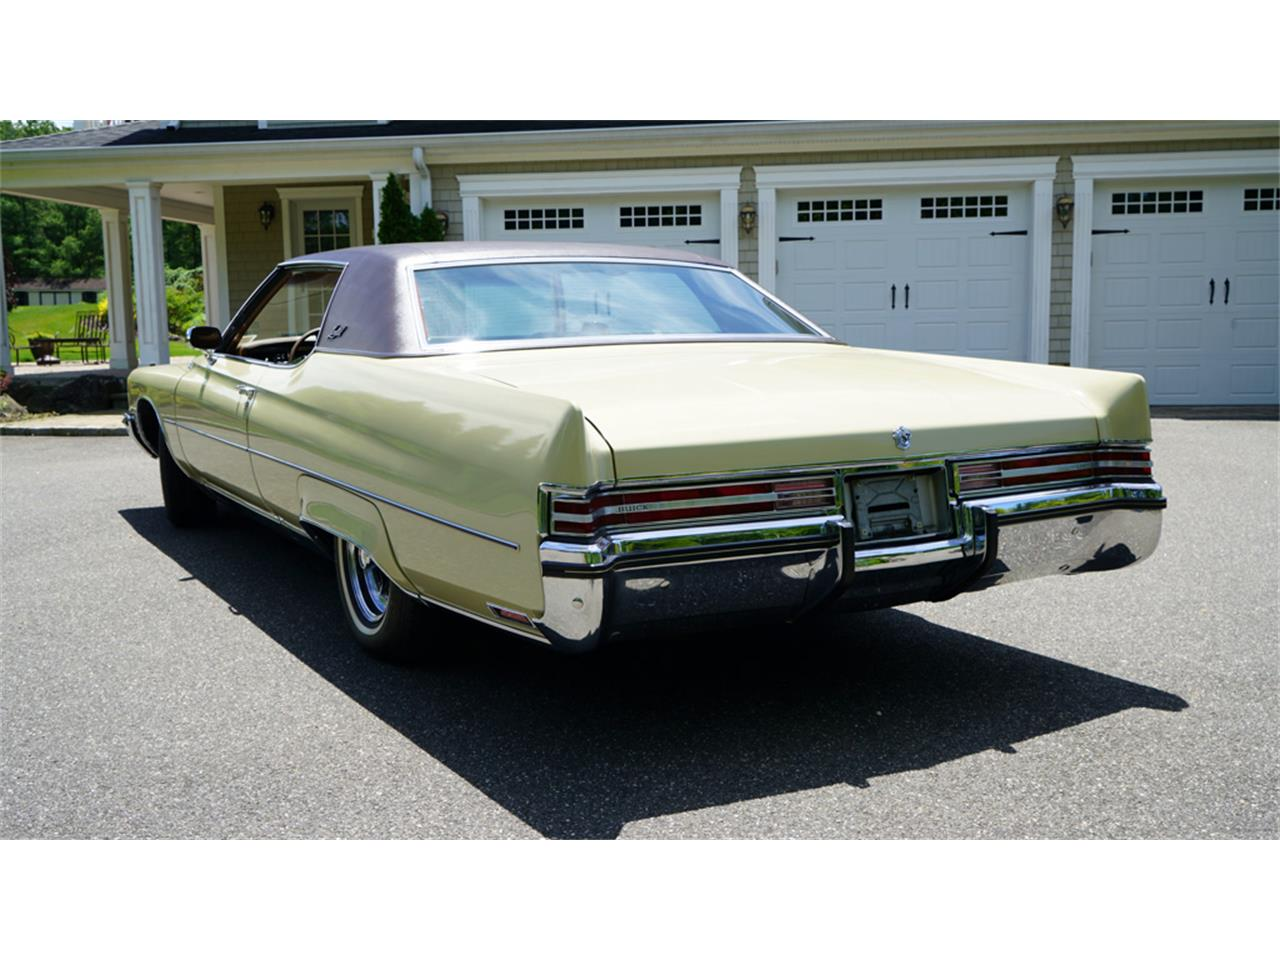 Large Picture of Classic '72 Buick Electra 225 located in New York - $32,500.00 - QAJE